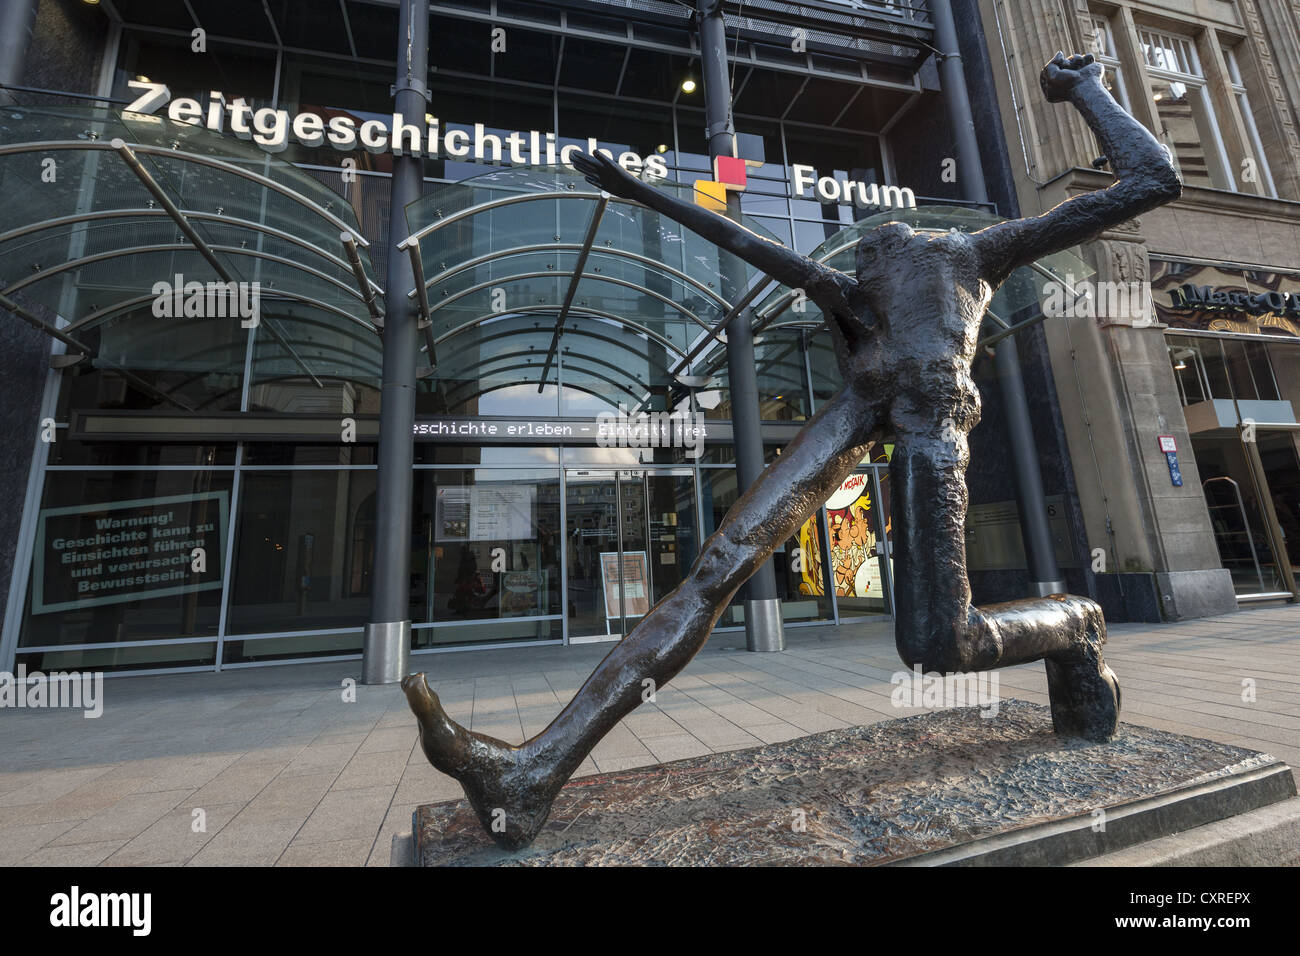 Sculpture in front of the Forum of Contemporary History, Grimmaische Strasse, Leipzig, Saxony, Germany, Europe - Stock Image